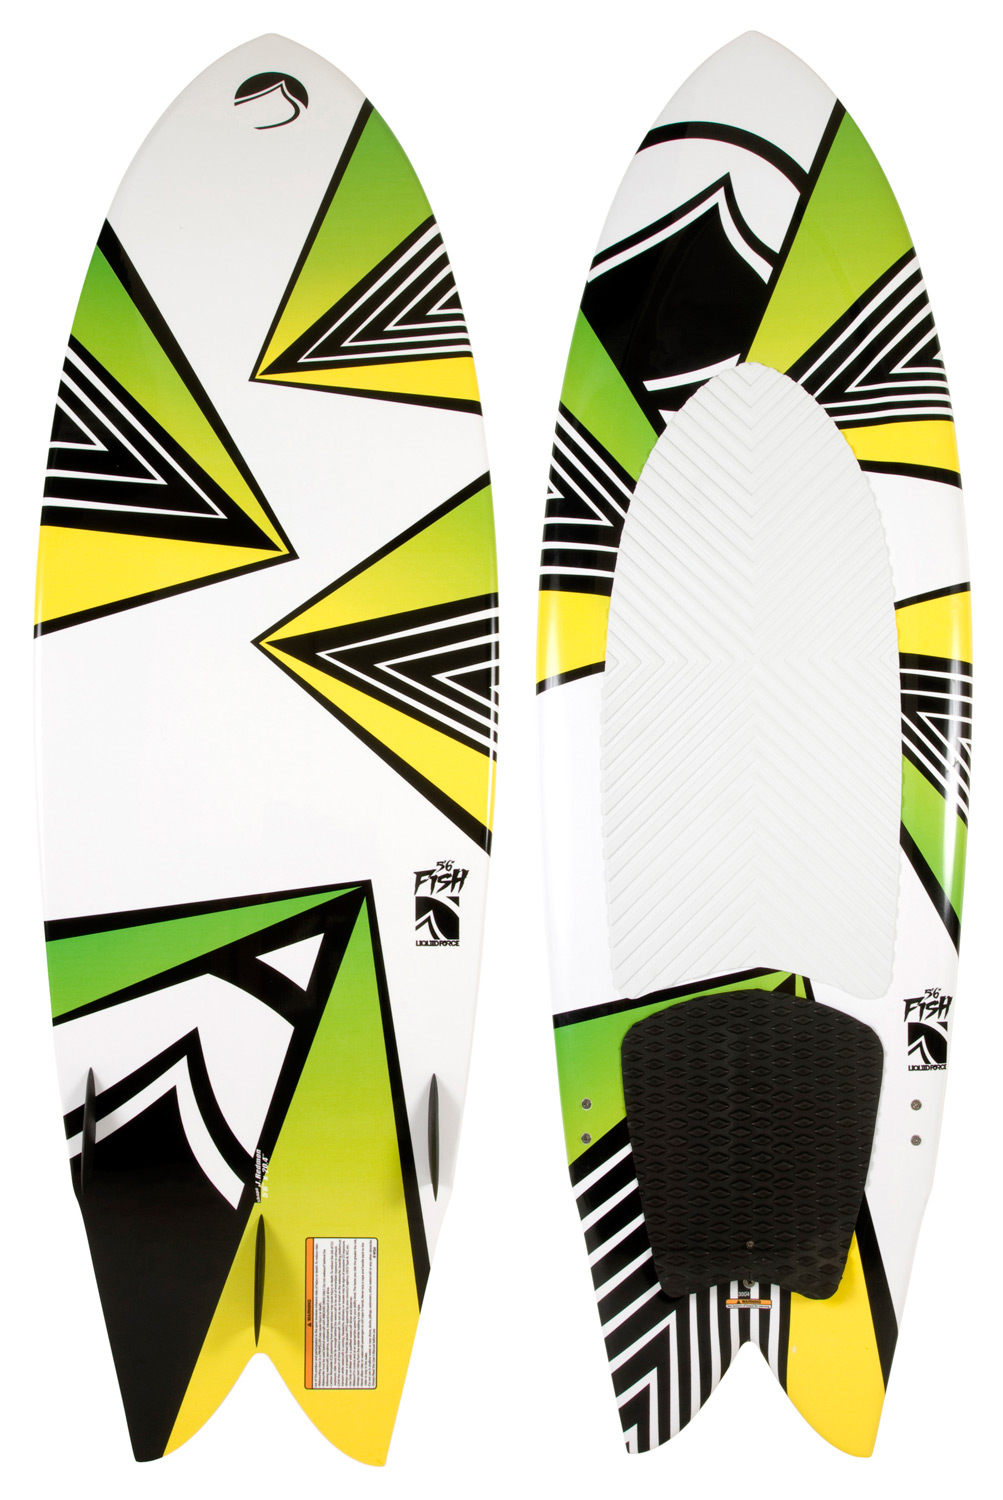 Wake The Fish is the wake surfer that ANYONE on the boat can have a blast on. First timers will appreciate the ease of use and buoyancy, while experienced surfers will appreciate the advanced shape, speed, and durability. The swallow tail makes it a bit looser through the back, allowing you to turn and hack at will. The most durable wake surfer in our lineup, this board is a must have for any boat!Key Features of the Liquid Force Fish Wakesurfer: Winged Swallow Tail - Fish Outline: The Fish is designed with a fuller shape/ outline to provide maximum float & drive. Compression Molded Design: Clean look and maximum durability. Full Rail Shape with Sharp Edge through the Tail: Quicker water release for improved speed & glide. Double Concave Hull: This Hull creates smooth and efficient water flow with extra lift. Interchangeable 2+1 Fin Set-Up: Adapt the set-up to suit your own riding style Grooved EVA Deck Pad: Arch bar & kick stop for positive grip and sure-footed traction. - $299.99